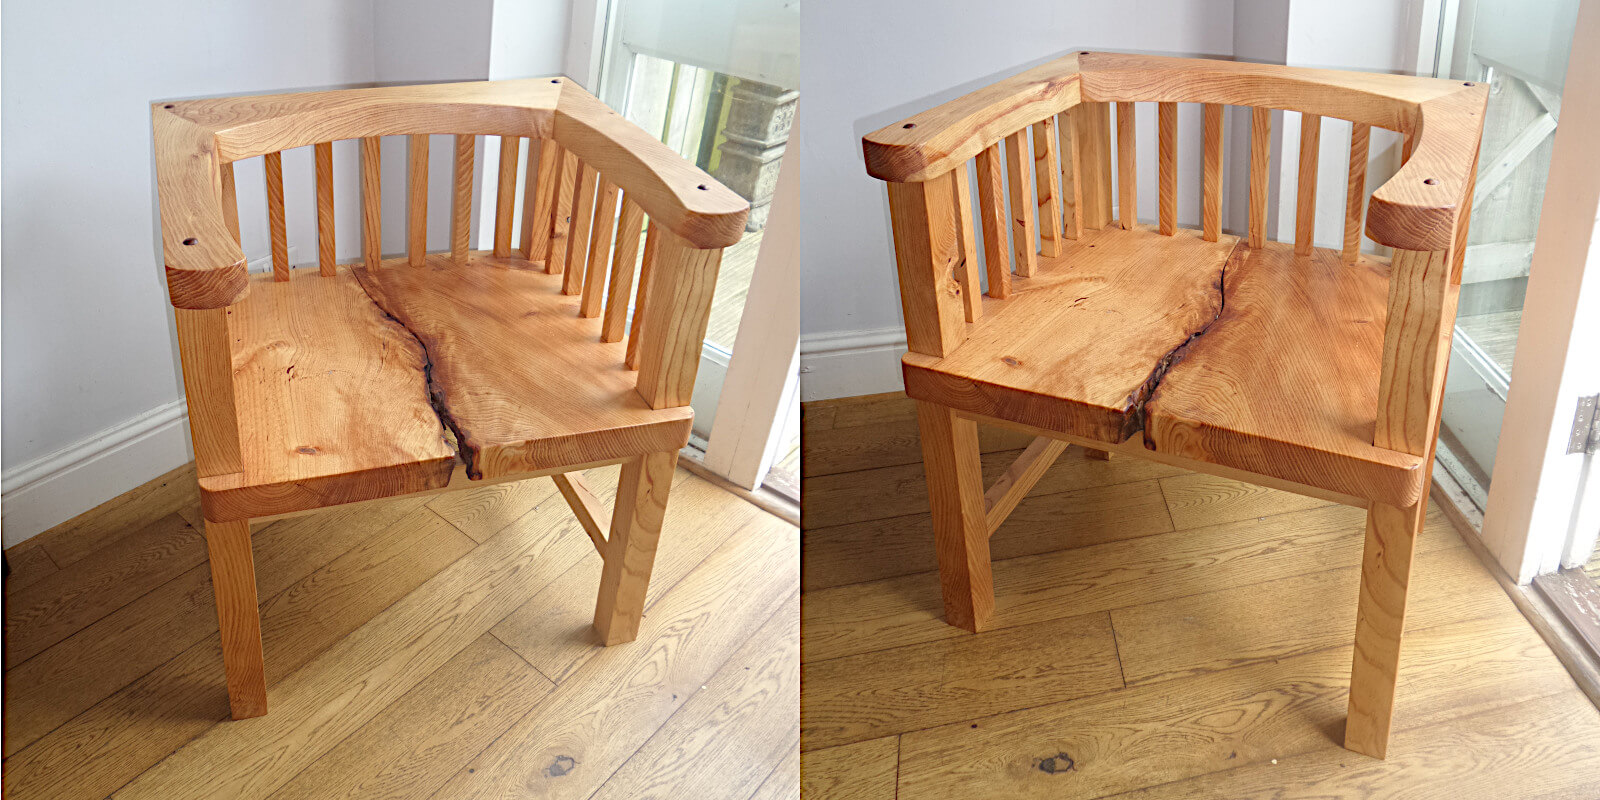 Bespoke Handcrafted Pine Chair